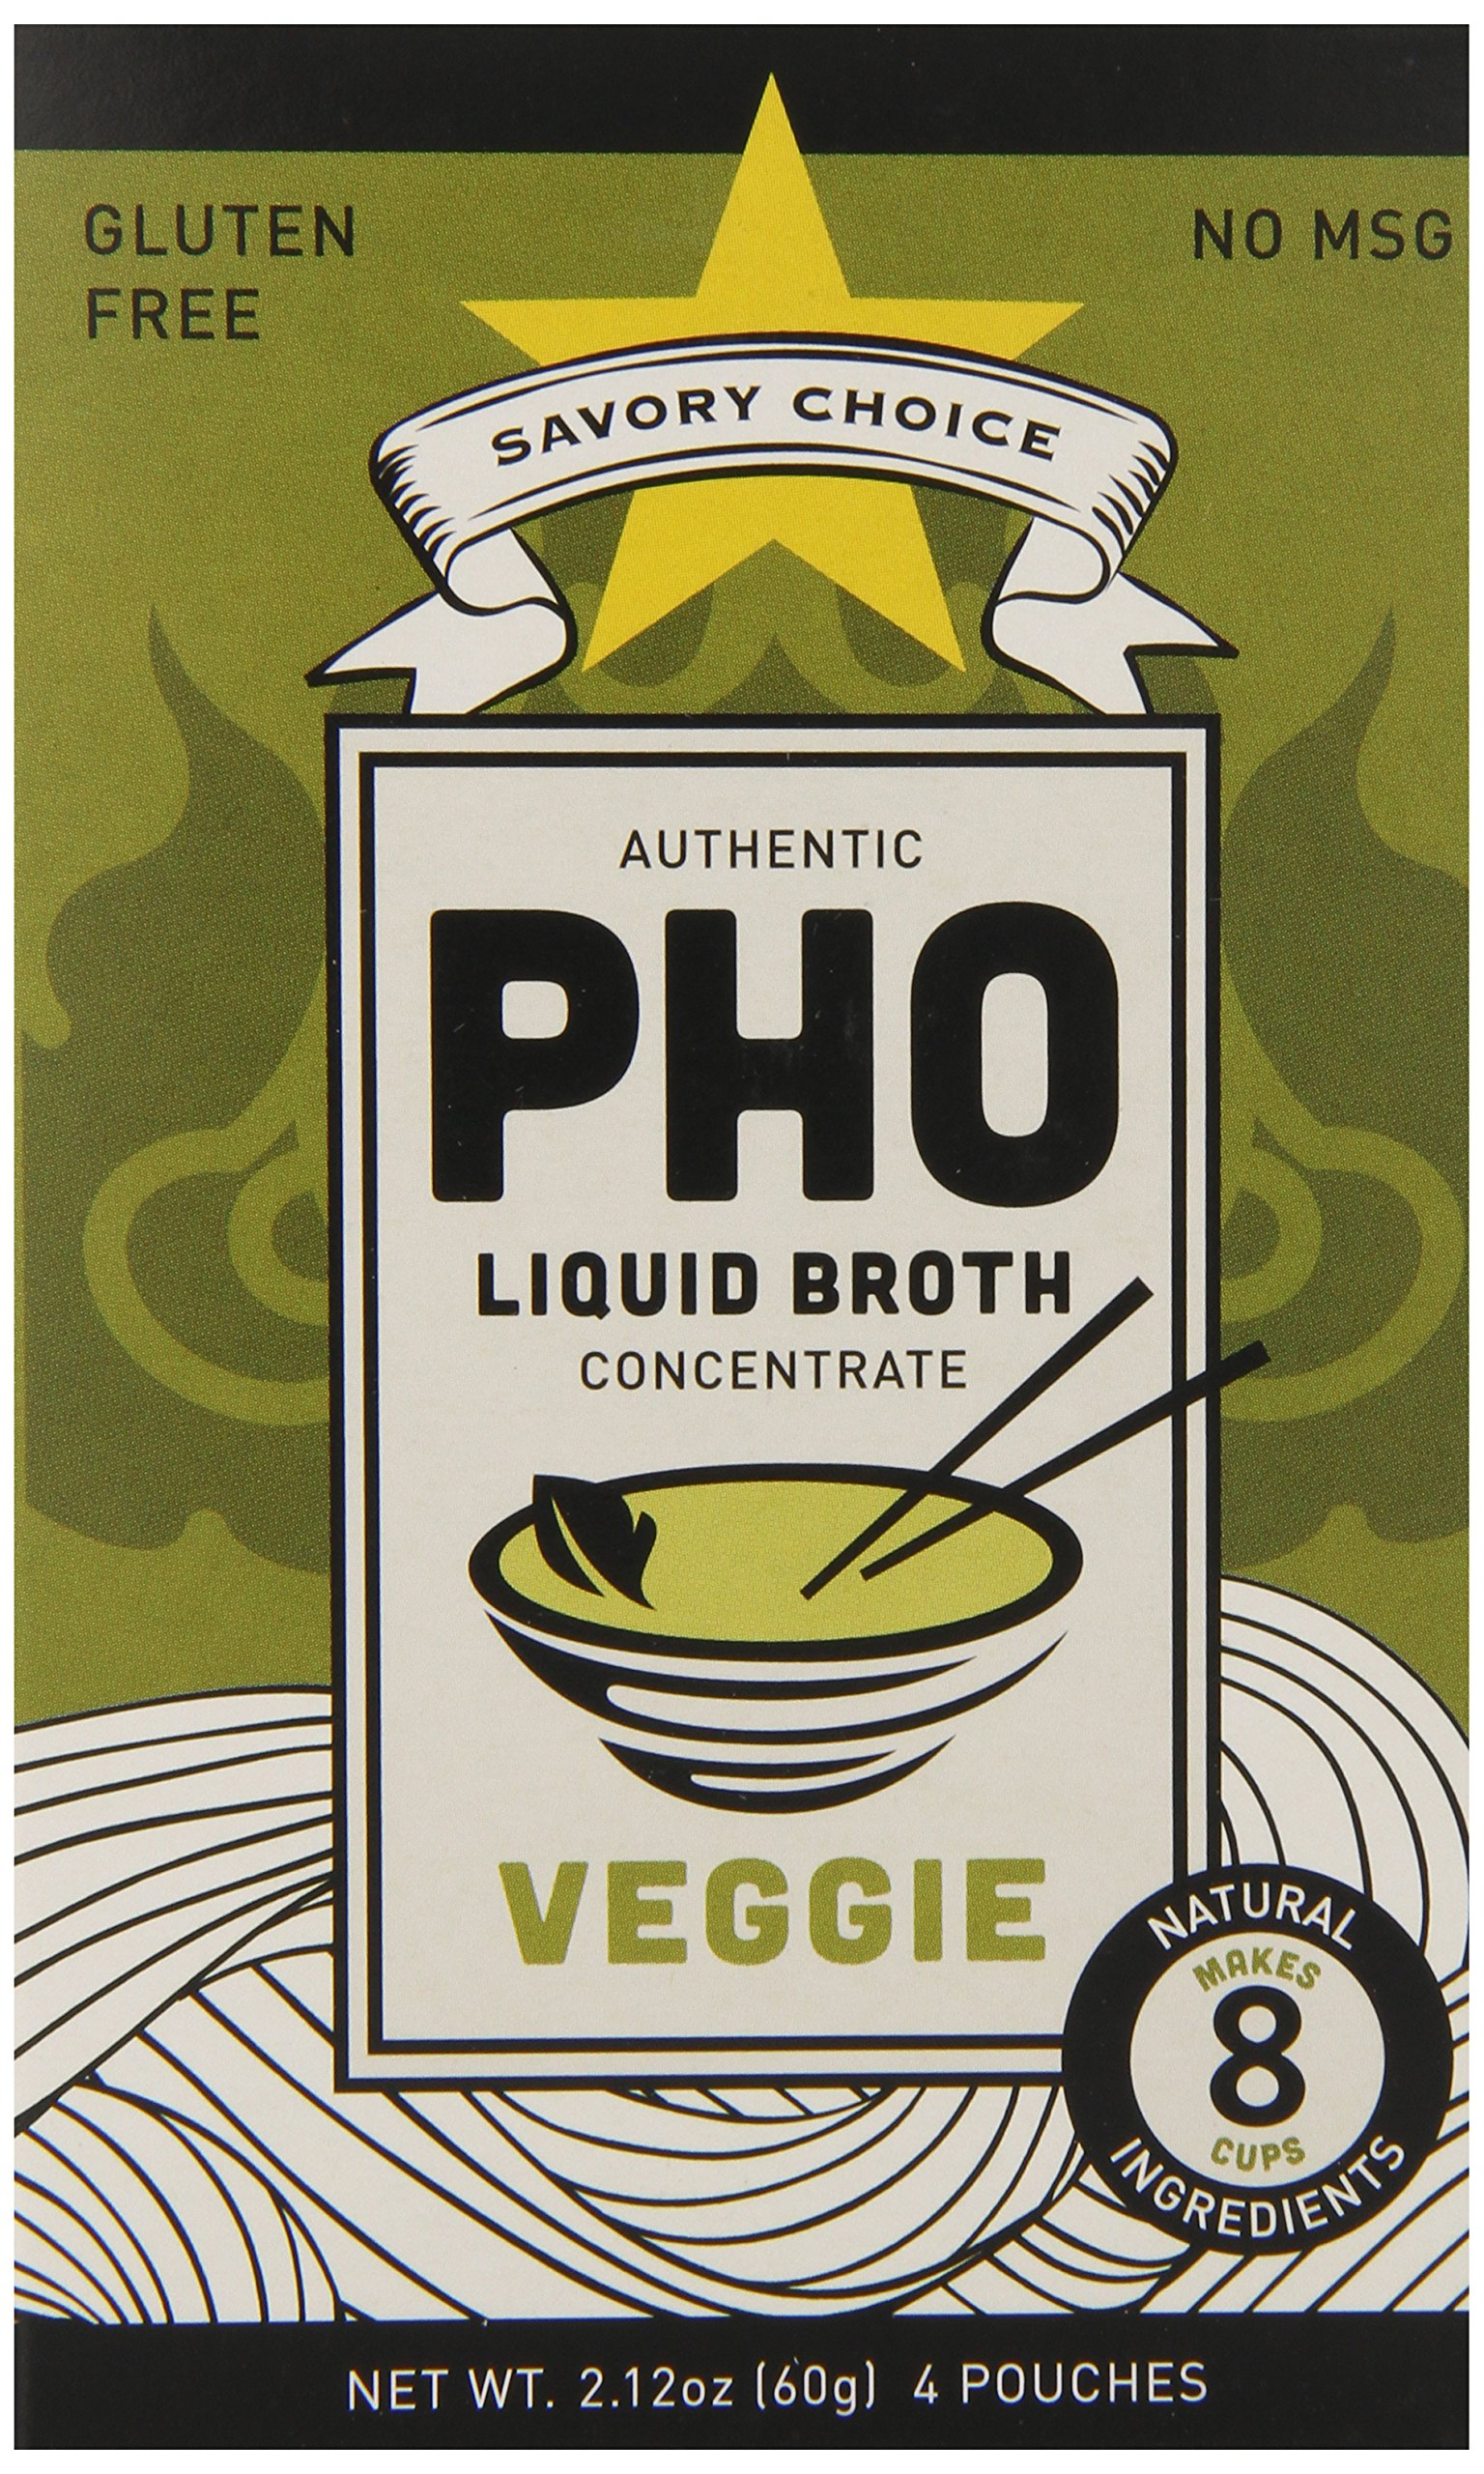 Savory Choice Pho Liquid Broth Concentrate, Vegetable, 2.2 Ounce (Pack of 12) by Savory Choice